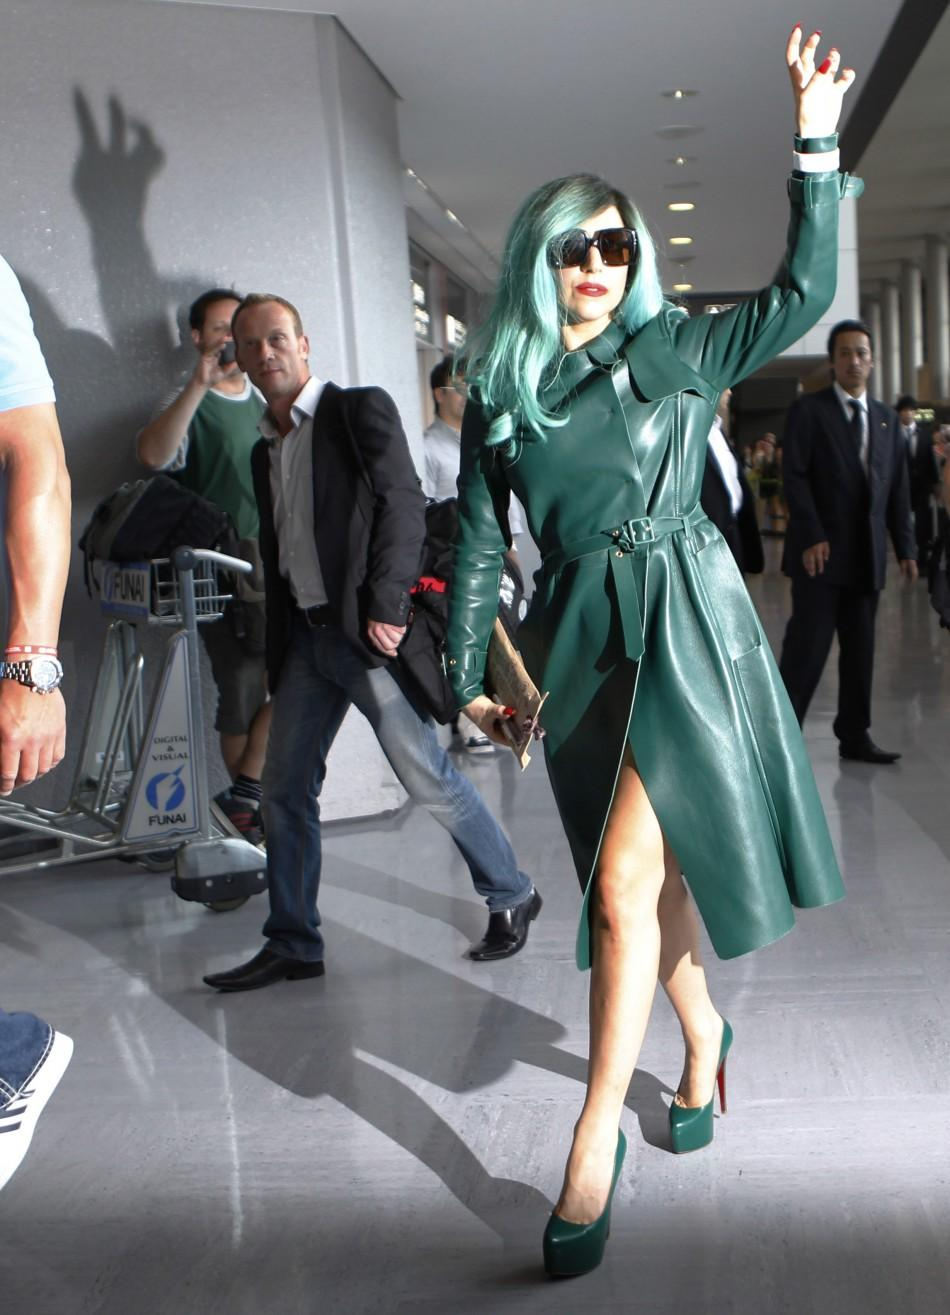 Singer Lady Gaga gestures at the media upon her arrival at Narita International Airport near Tokyo